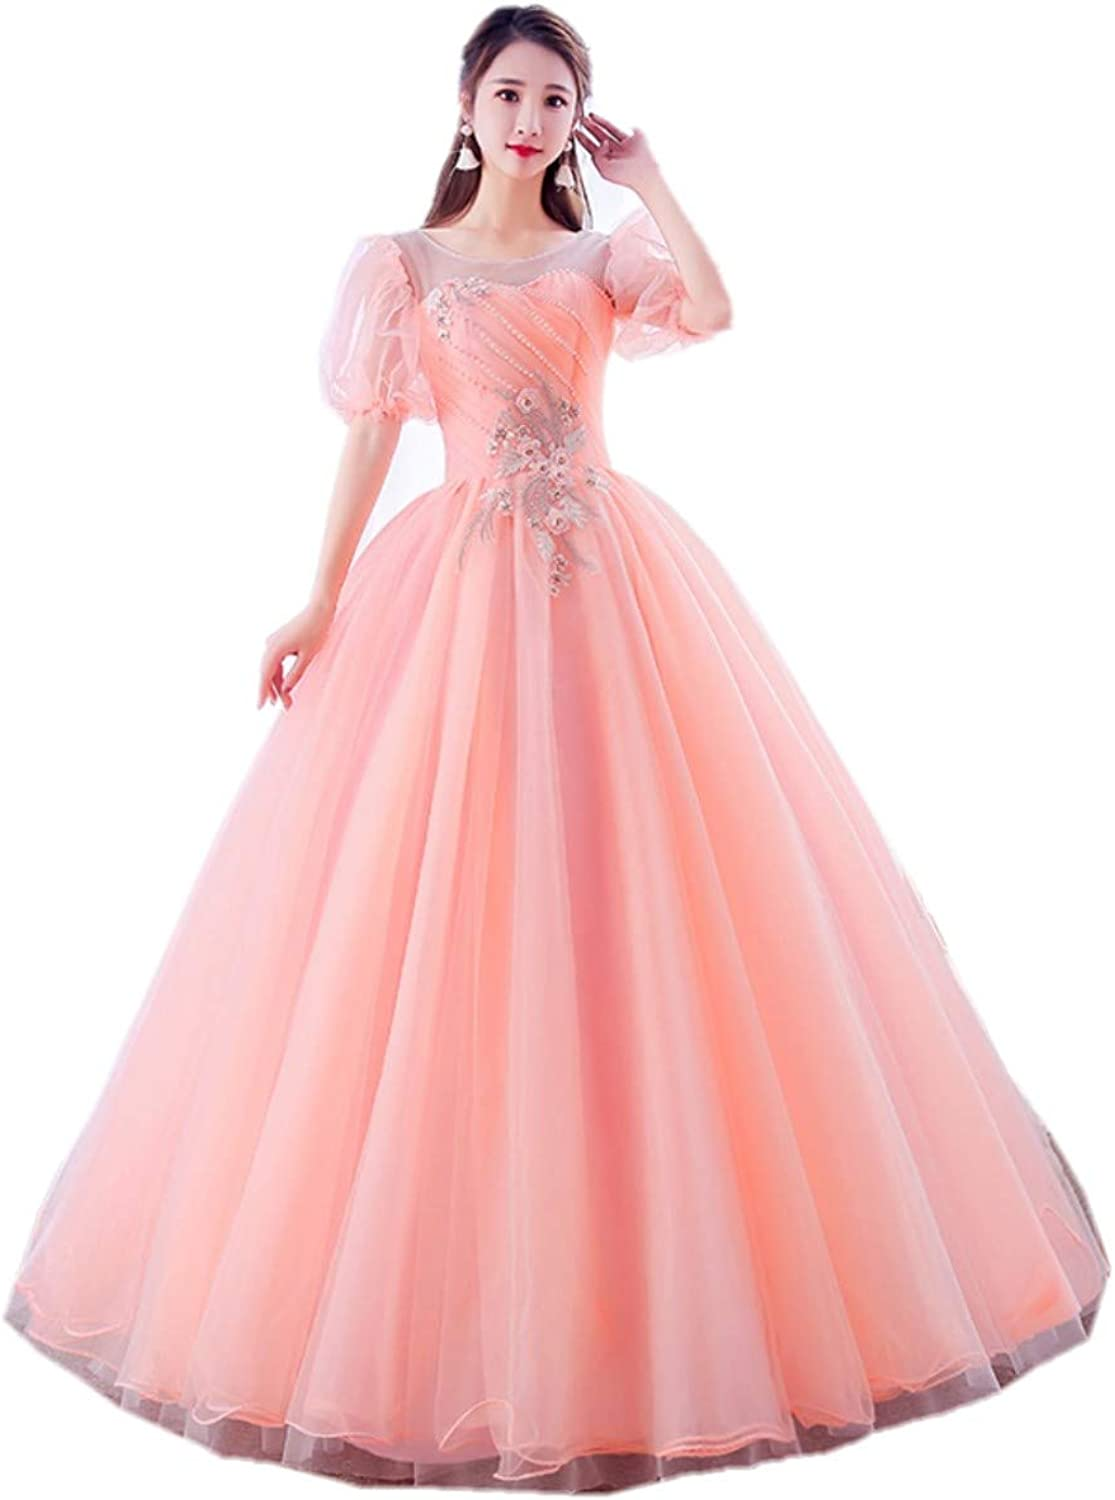 Darcy74Dulles Women's Ball Gown Puff Sleeve Beading Green Quinceanera Dress Lace Prom Gowns Sweet 16